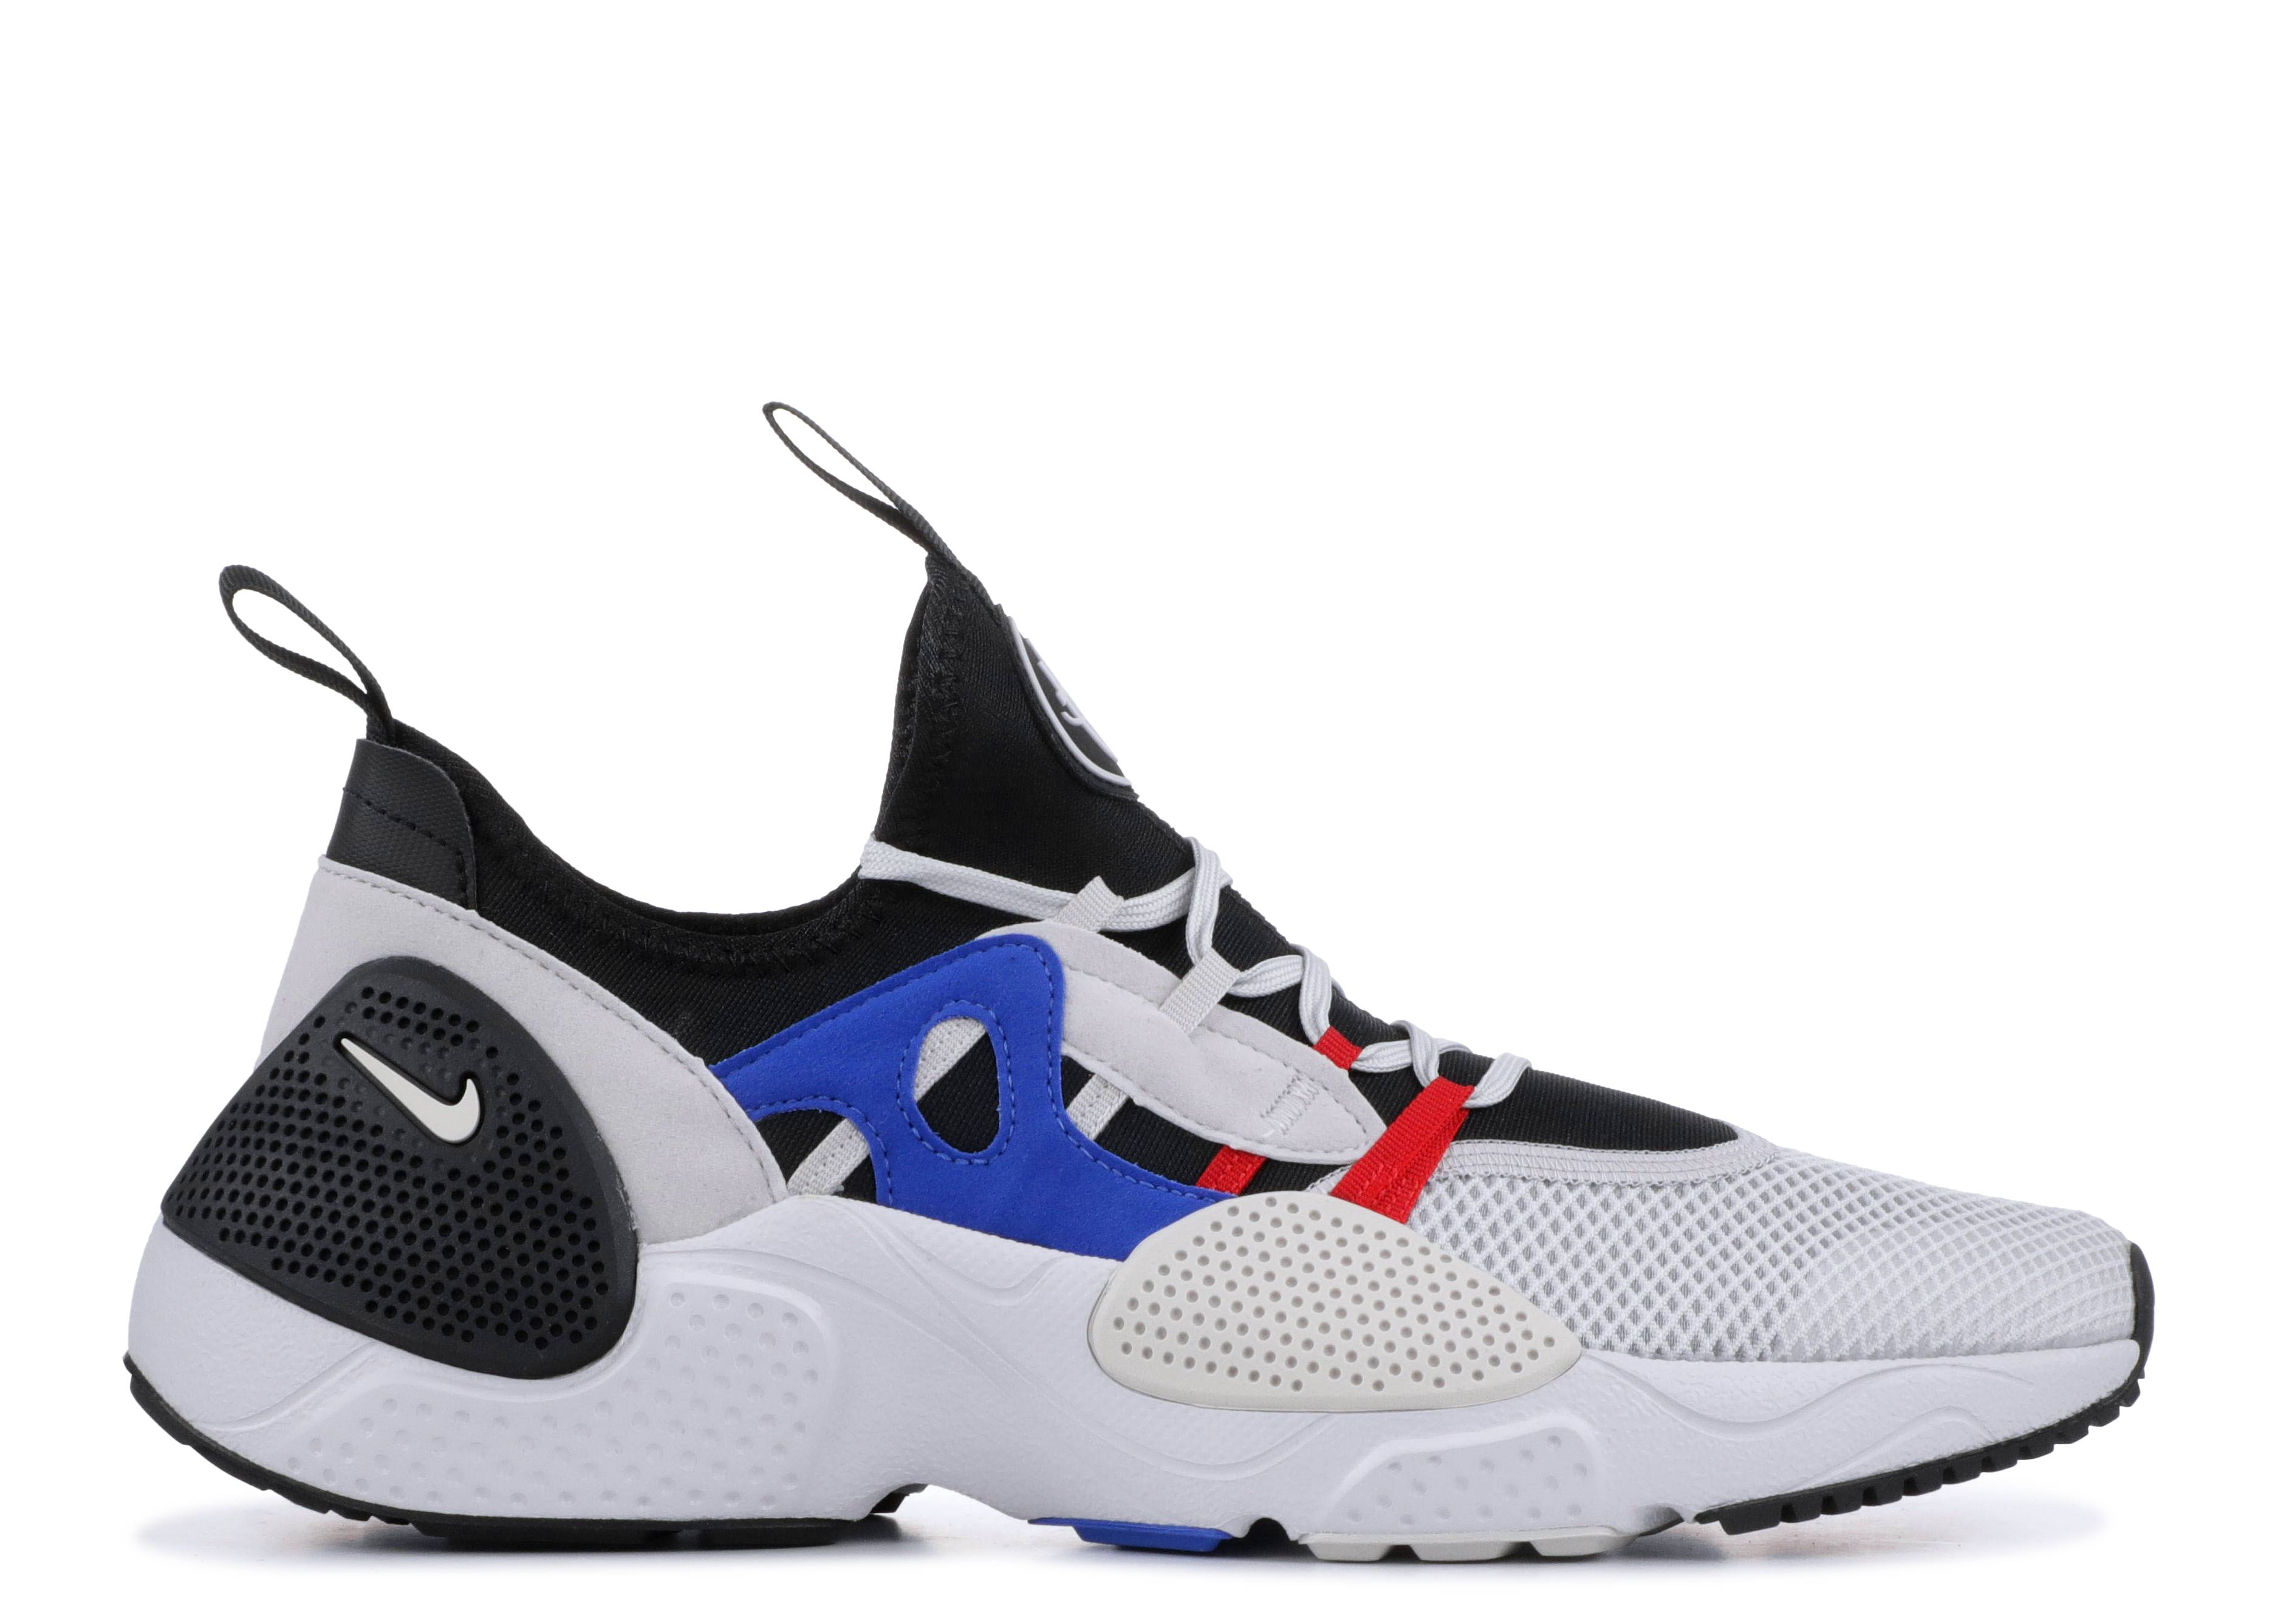 342def406c522 Nike Huaraches Shoes for Women   Men